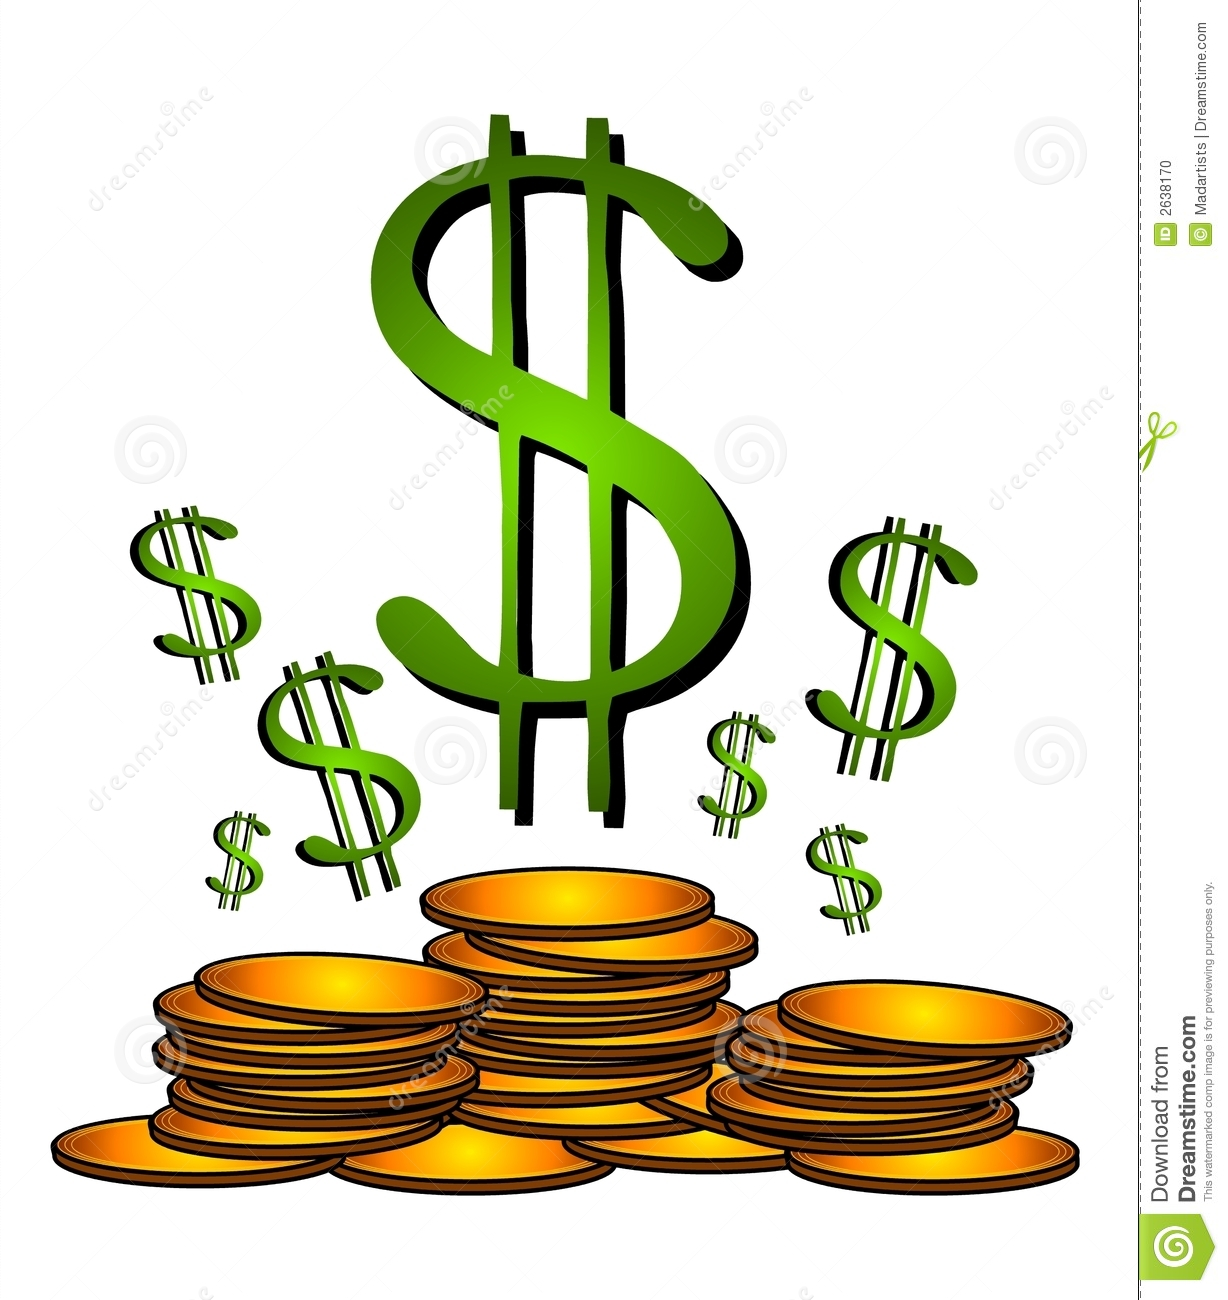 Cash clipart dollar sign #7